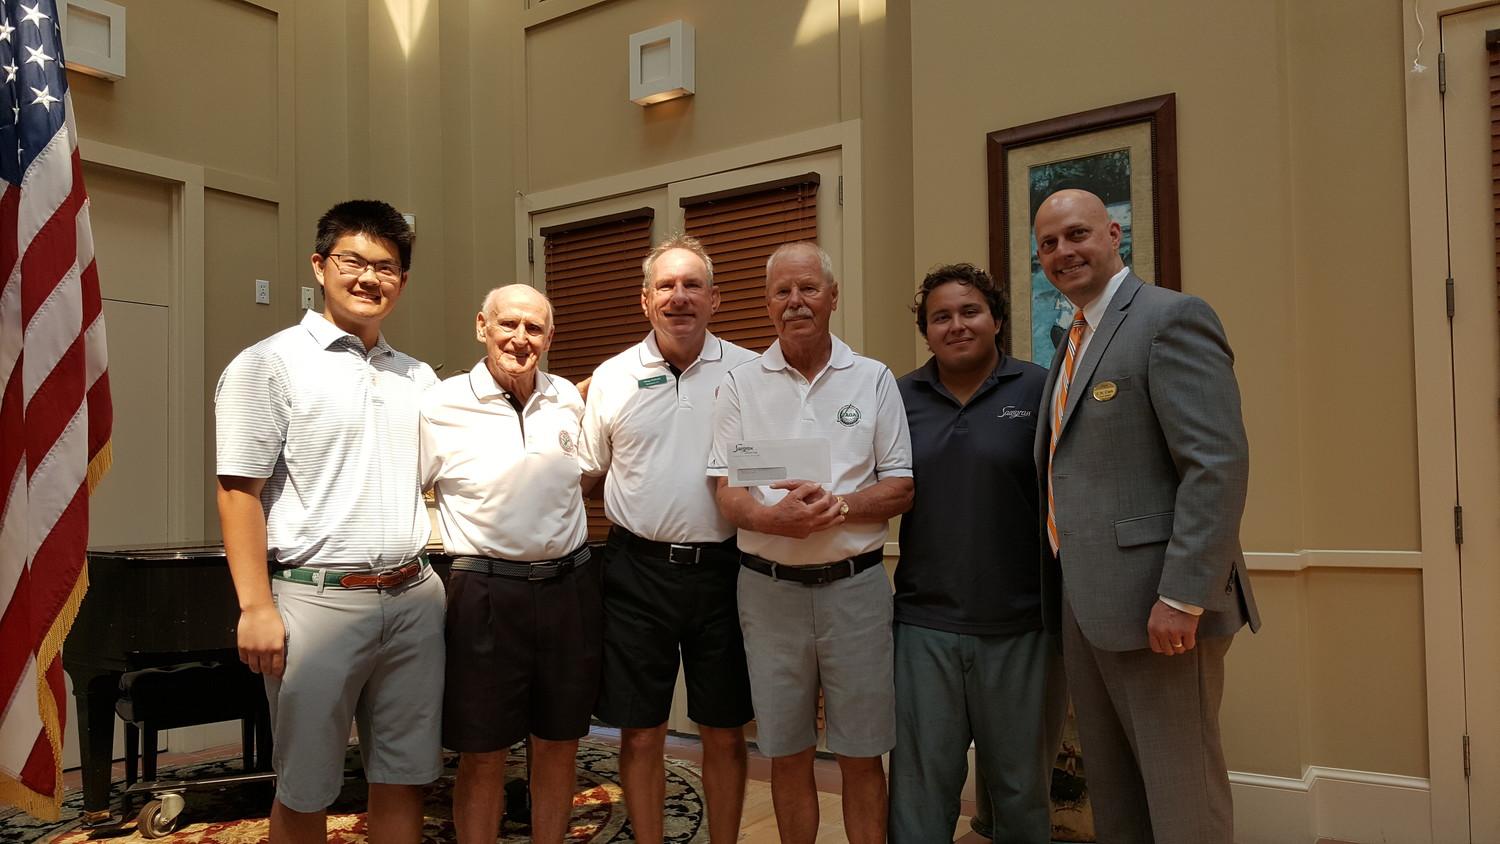 Leadership from Sawgrass Country Club presented Jacksonville Area Golf Association (JAGA) with a check donation of $12,800 for the nonprofit's scholarship trust last Monday, June 25 at JAGA's June meeting. Displayed in the photo are JAGA scholar Sam Ohno (from left), JAGA Directors Ray Gottschalk, Gregg Deiboldt, and Ken Hicks, JAGA scholar Emilio Mirabilio and Sawgrass Country Club General Manager C.W. Cook.